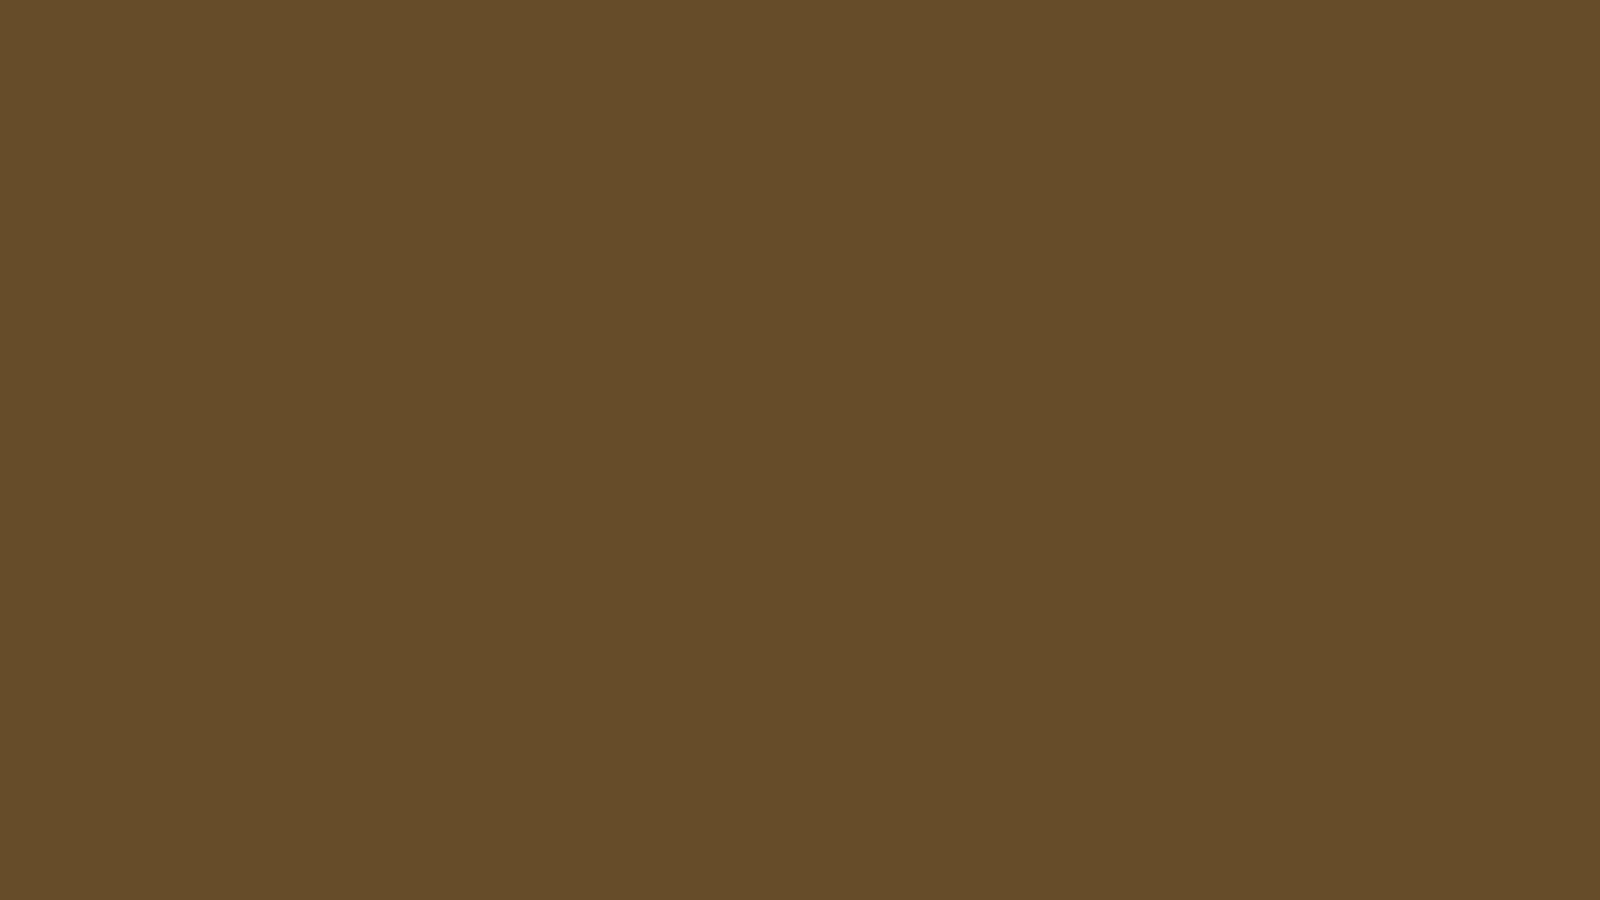 1600x900 Donkey Brown Solid Color Background